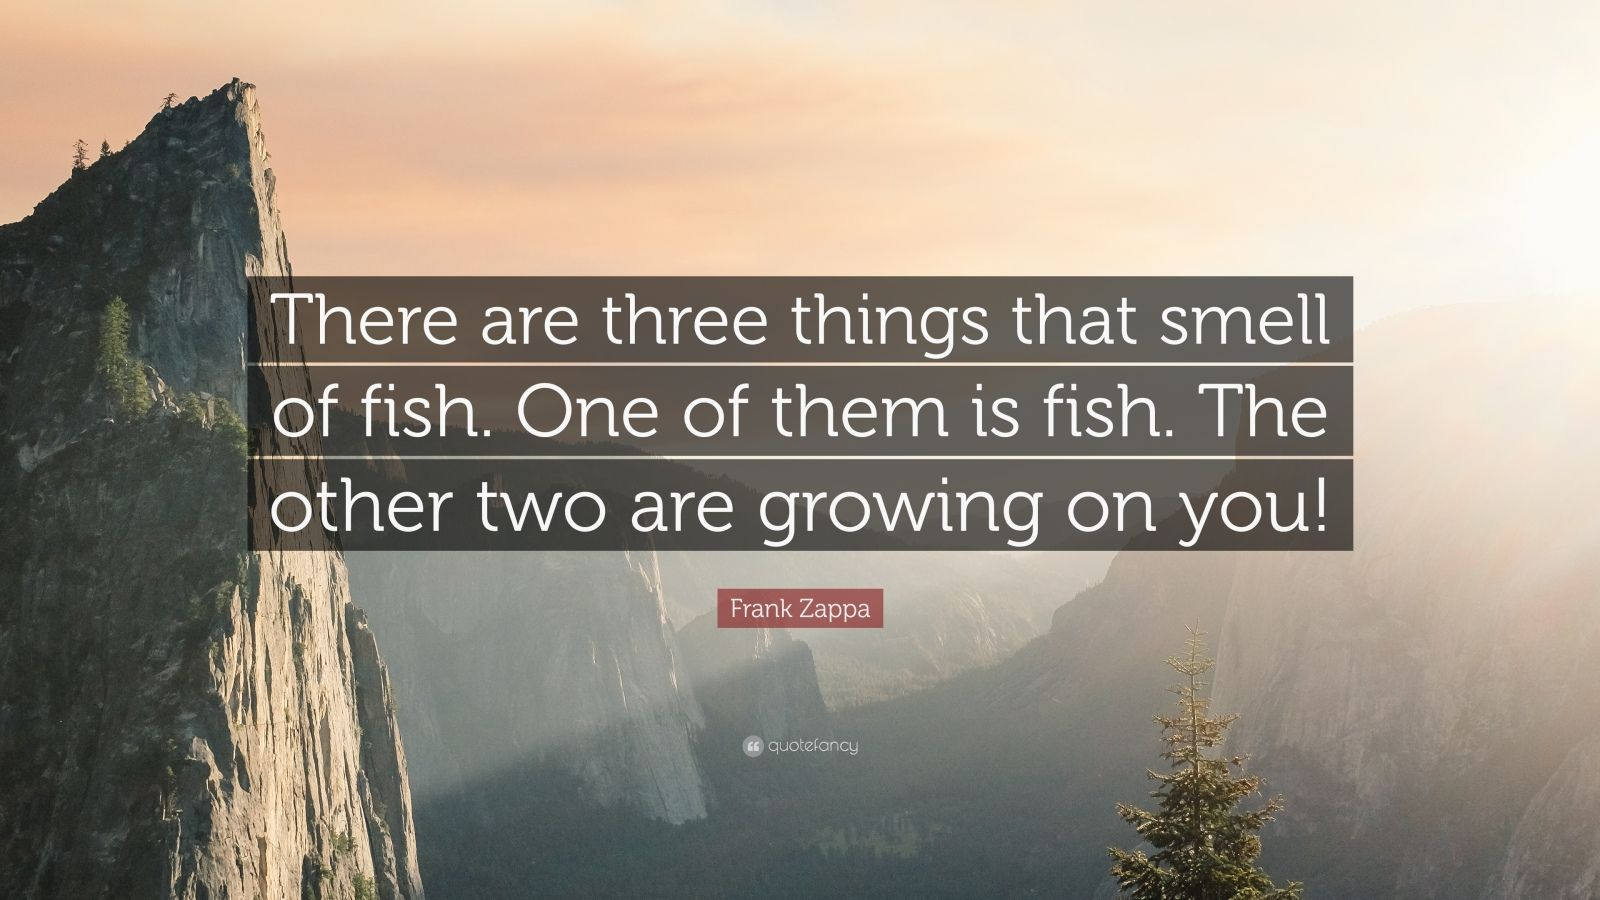 """Frank Zappa Quote: """"There are three things that smell of fish. One of them is fish. The other two are growing on you!"""""""